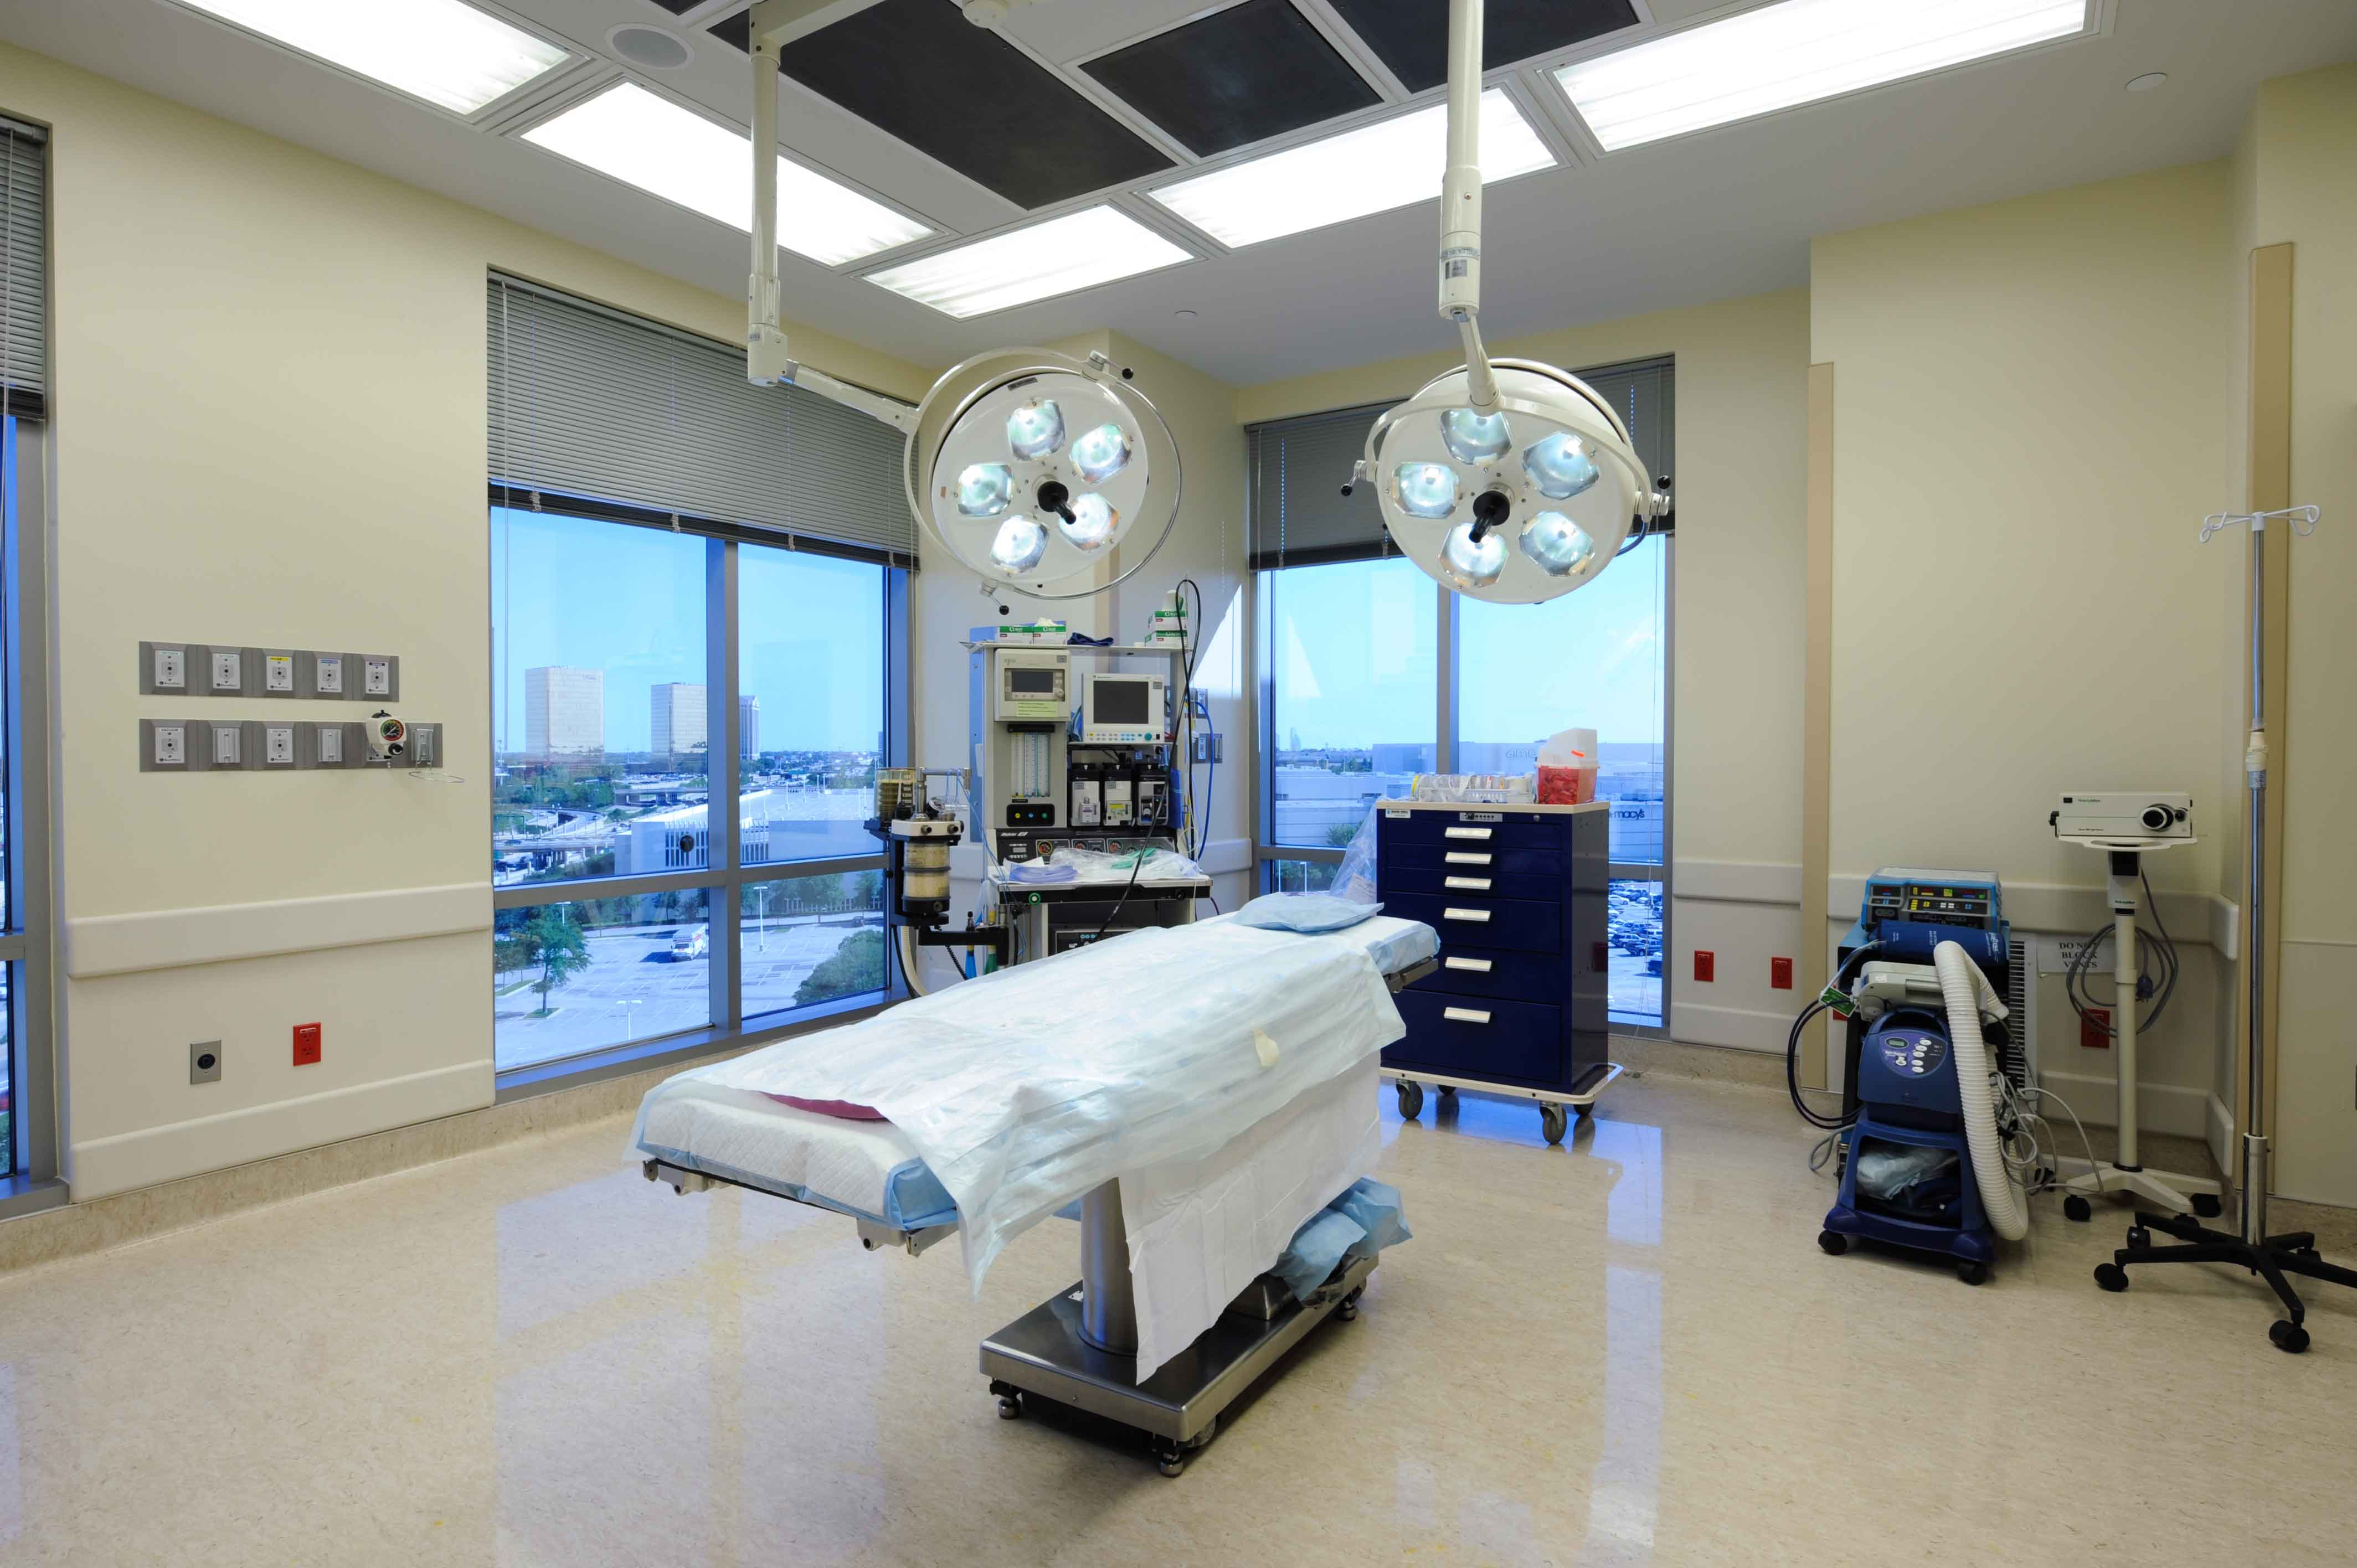 plastic surgery centers in dallas 1